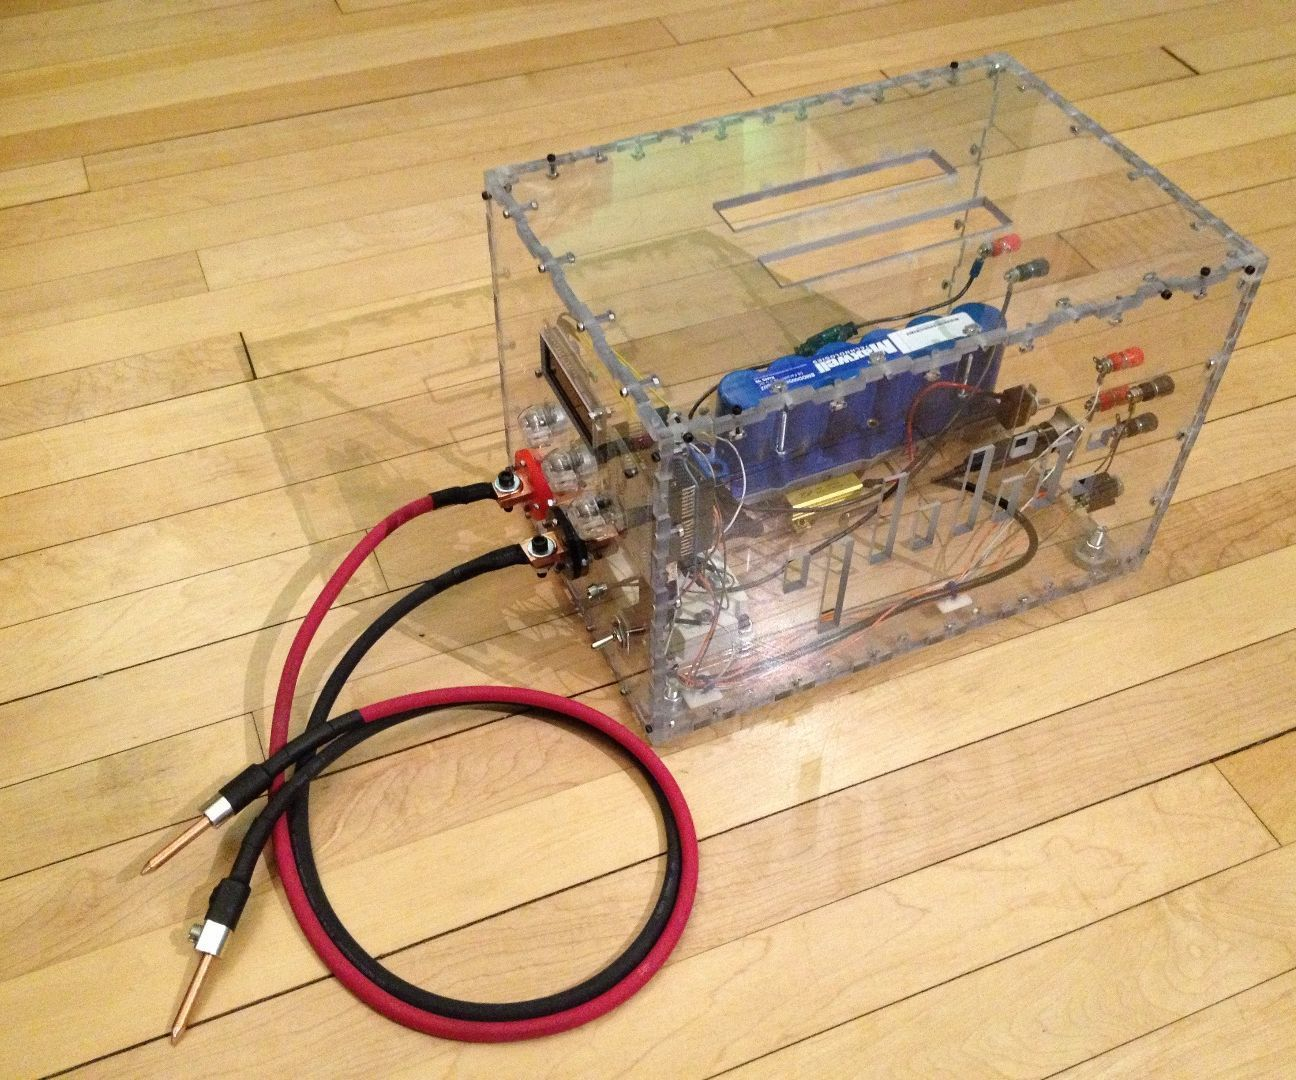 medium resolution of this instructables includes plans to build a dual pulse capacitive discharge spot welder that can output 400 amps in 60 micro seconds